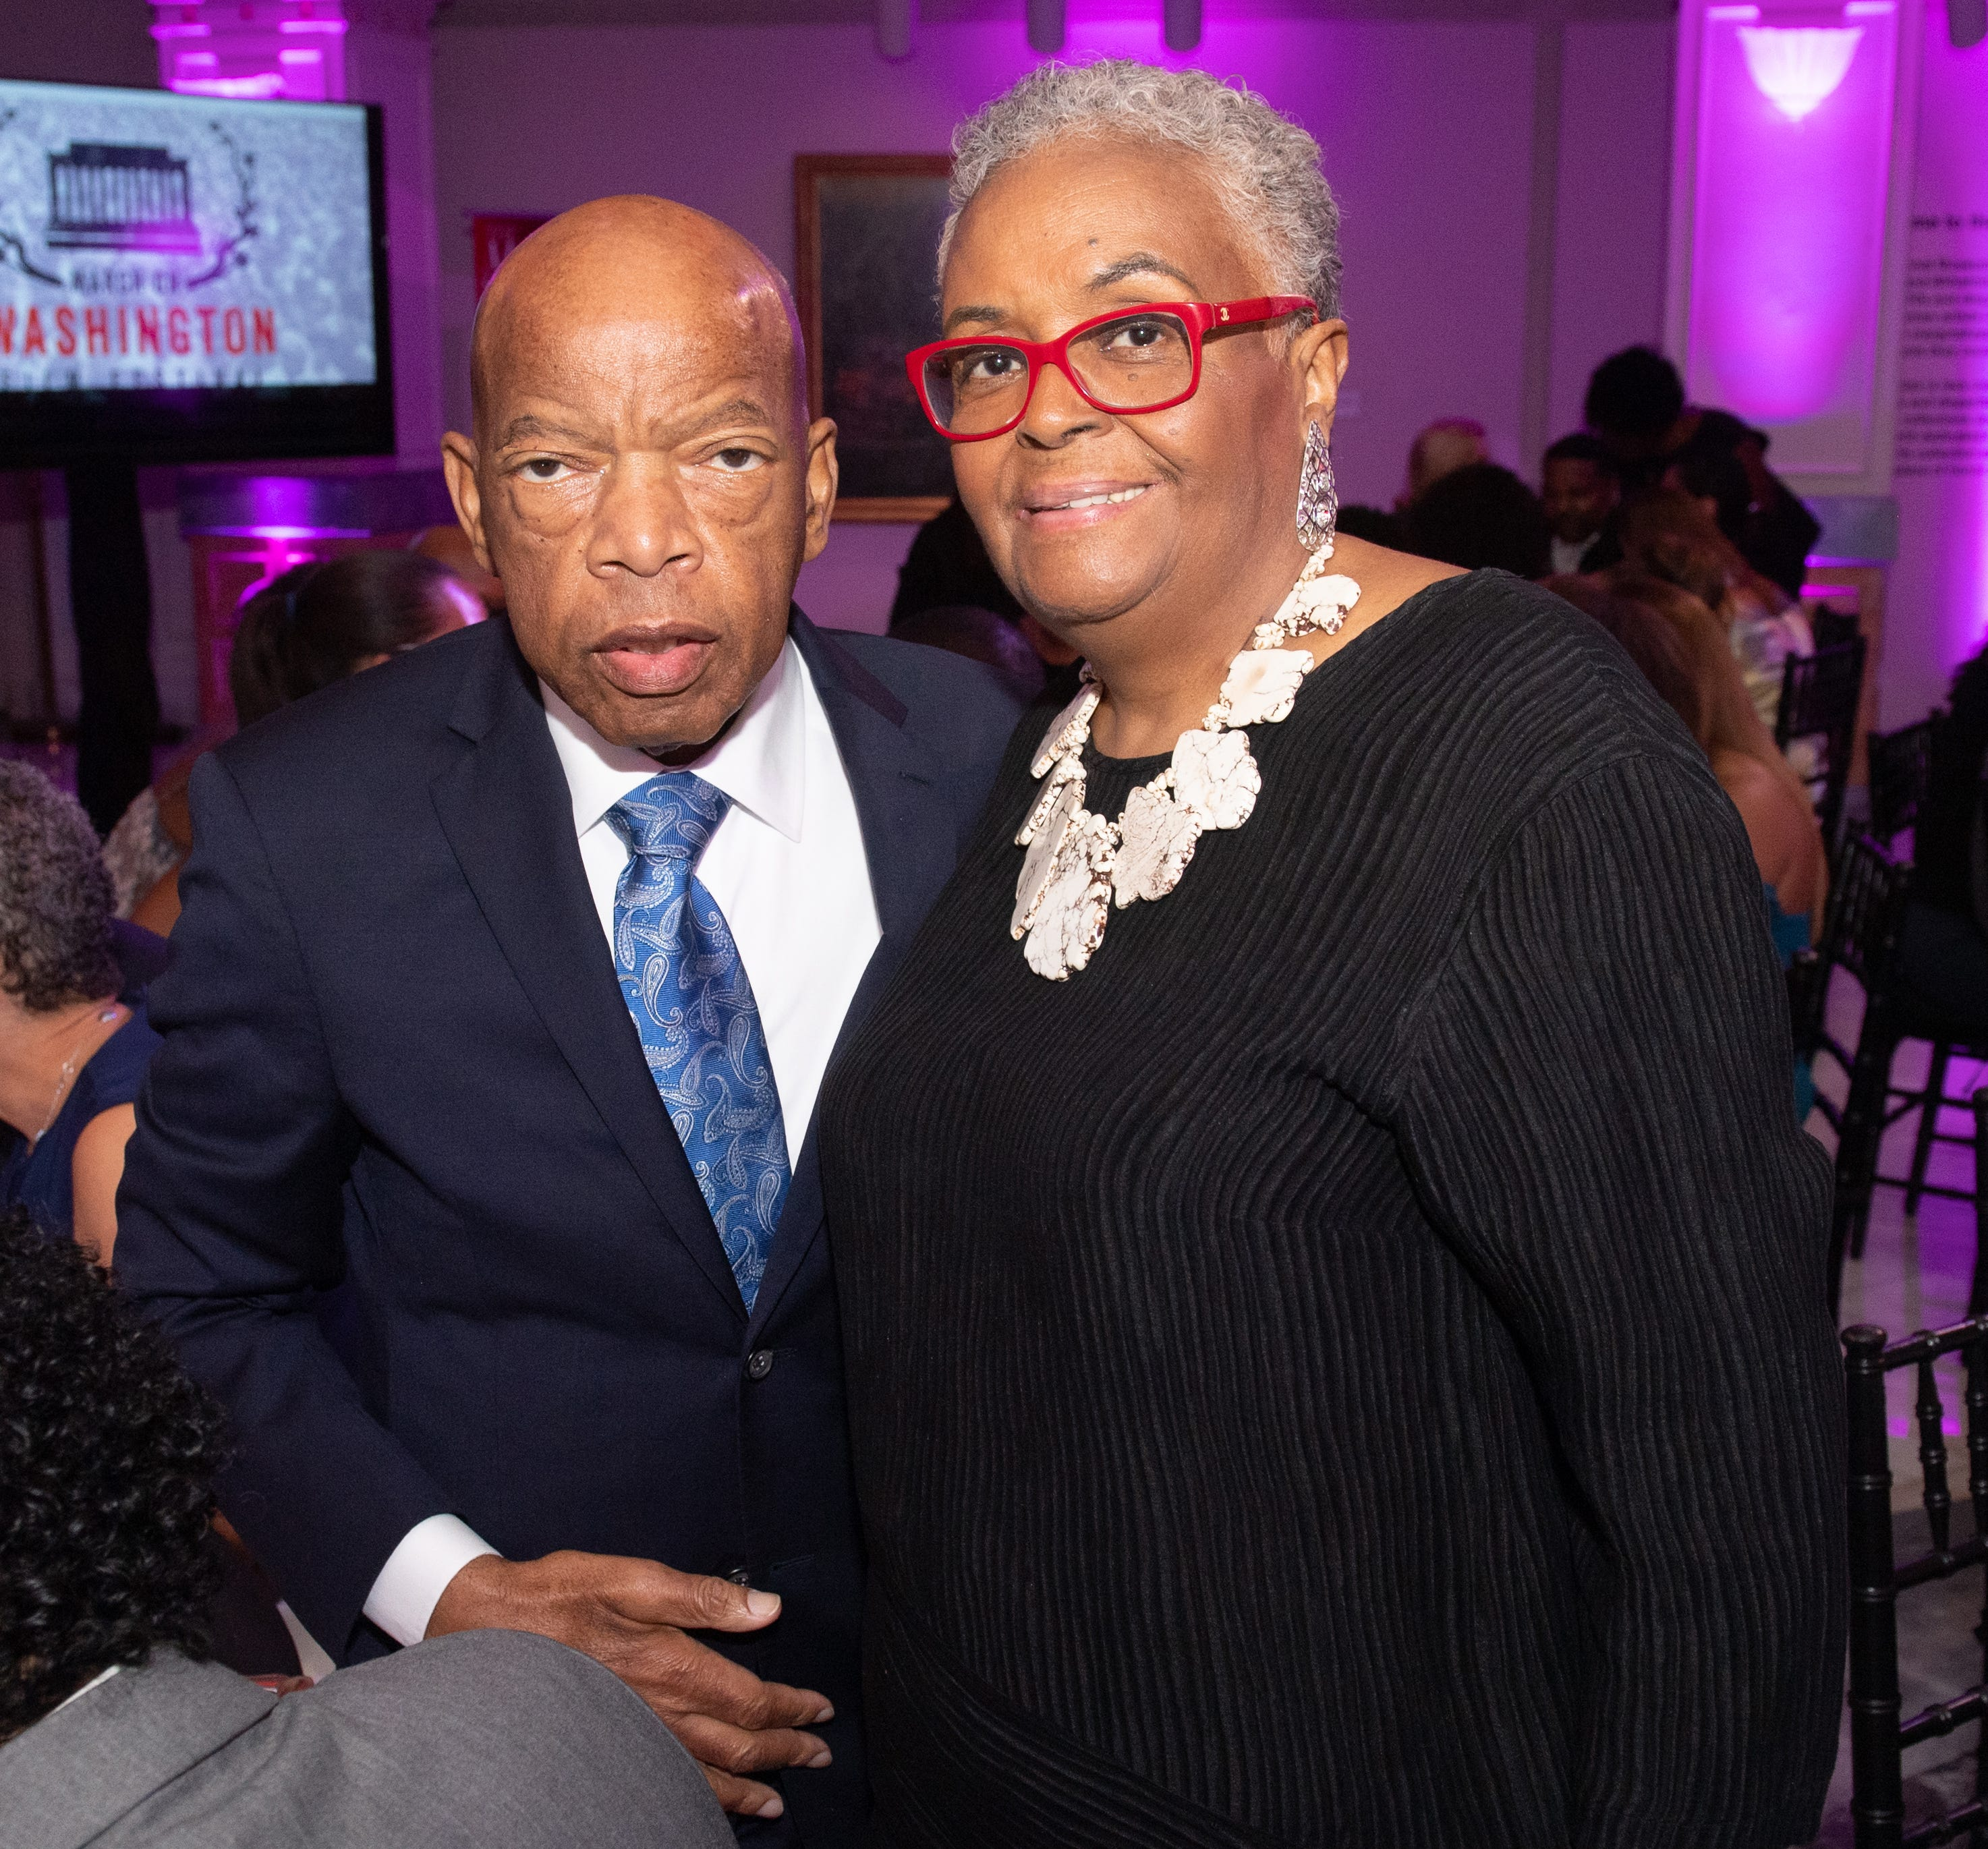 The late Georgia Rep. John Lewis and Joyce Ladner, both veterans of the civil rights movement chat in 2019 at a gala hosted by the March on Washington Film Festival.